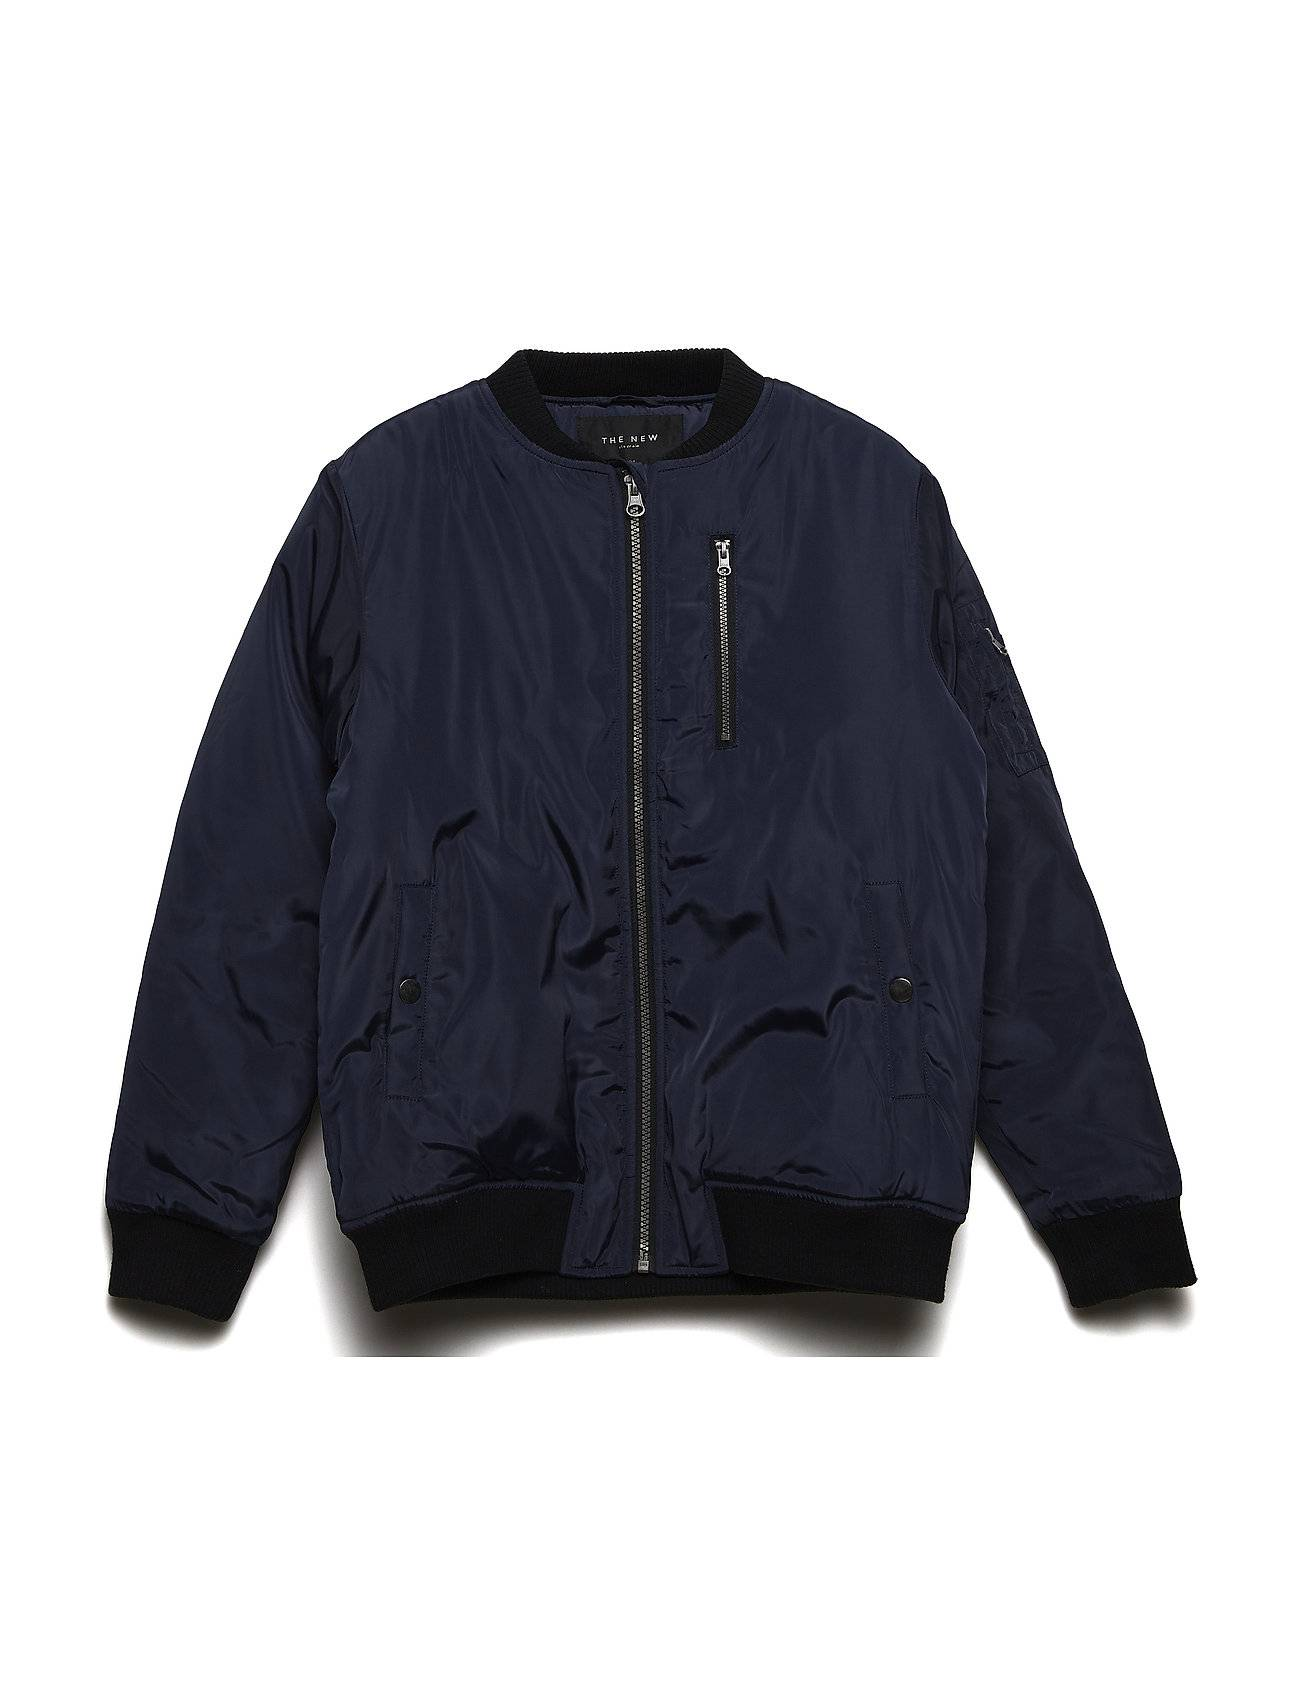 The New Connor Bomber Jacket Black Iris